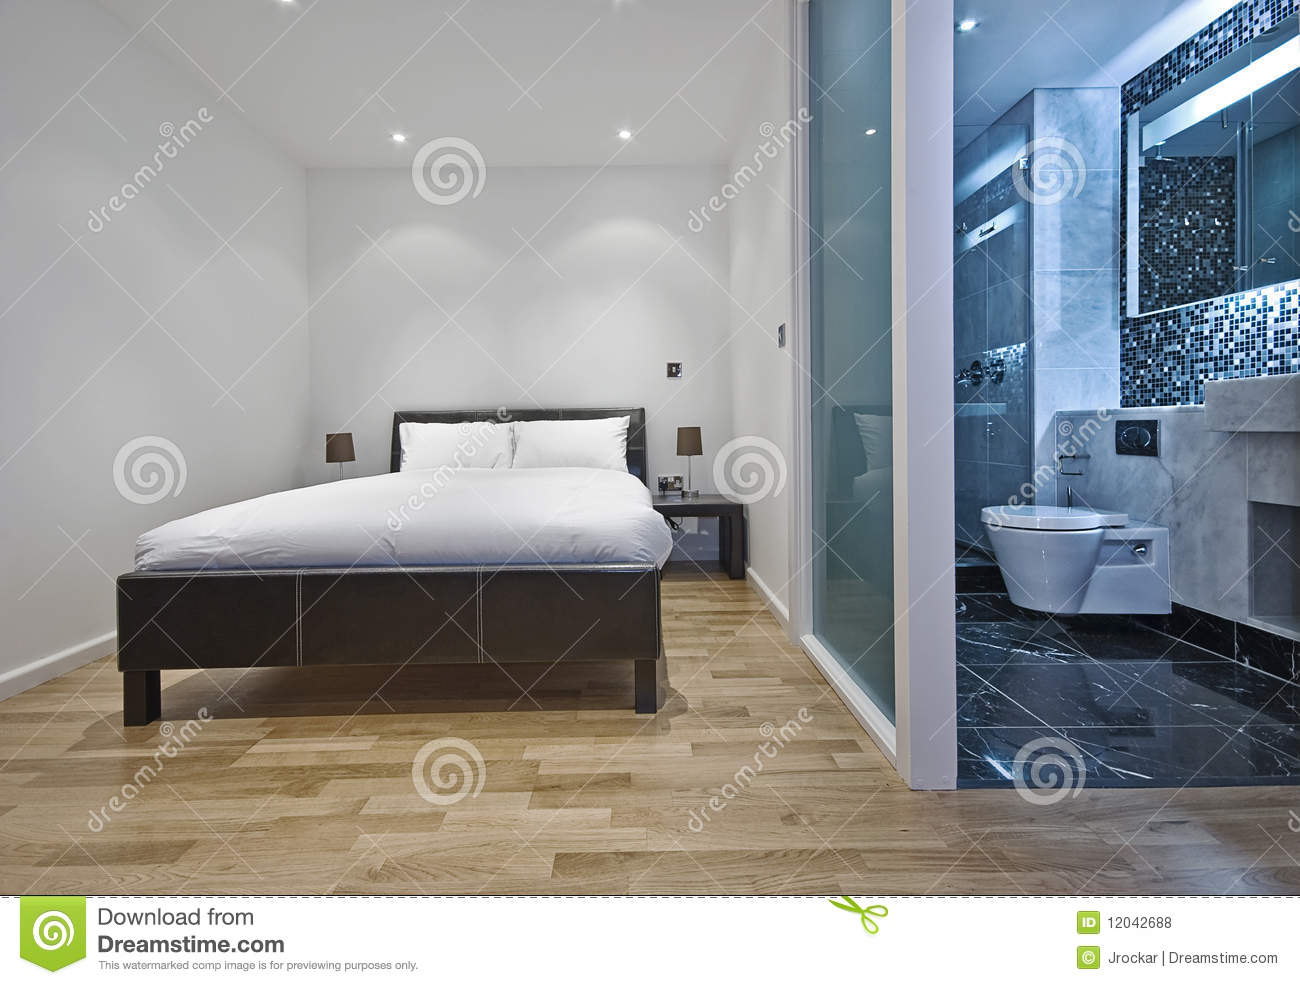 Bedroom with en suite bathroom royalty free stock photos for Images of en suite bathrooms